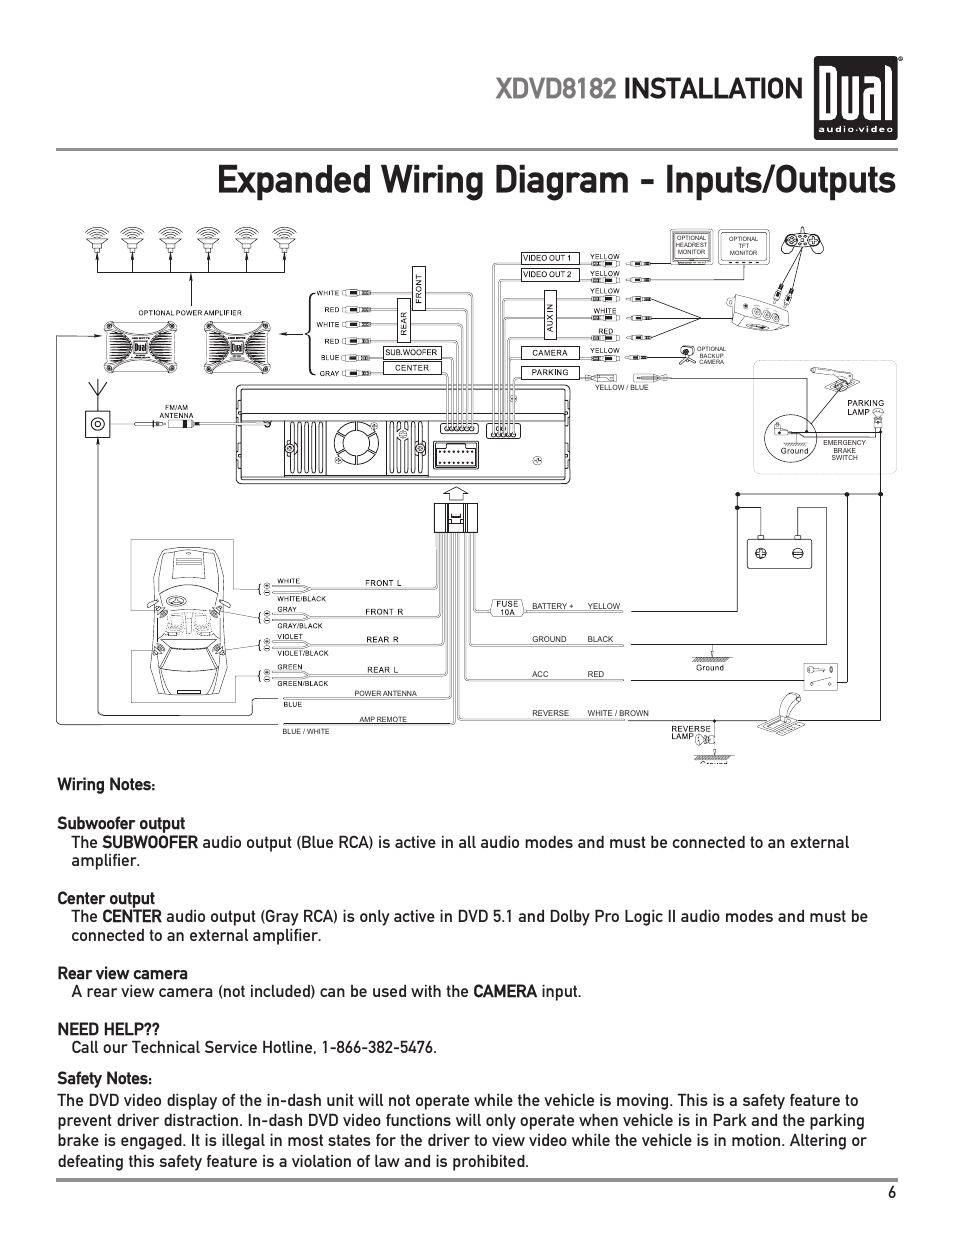 Expanded Wiring Diagram Inputs Outputs Xdvd8182 Installation Input Output Dual User Manual Page 7 60